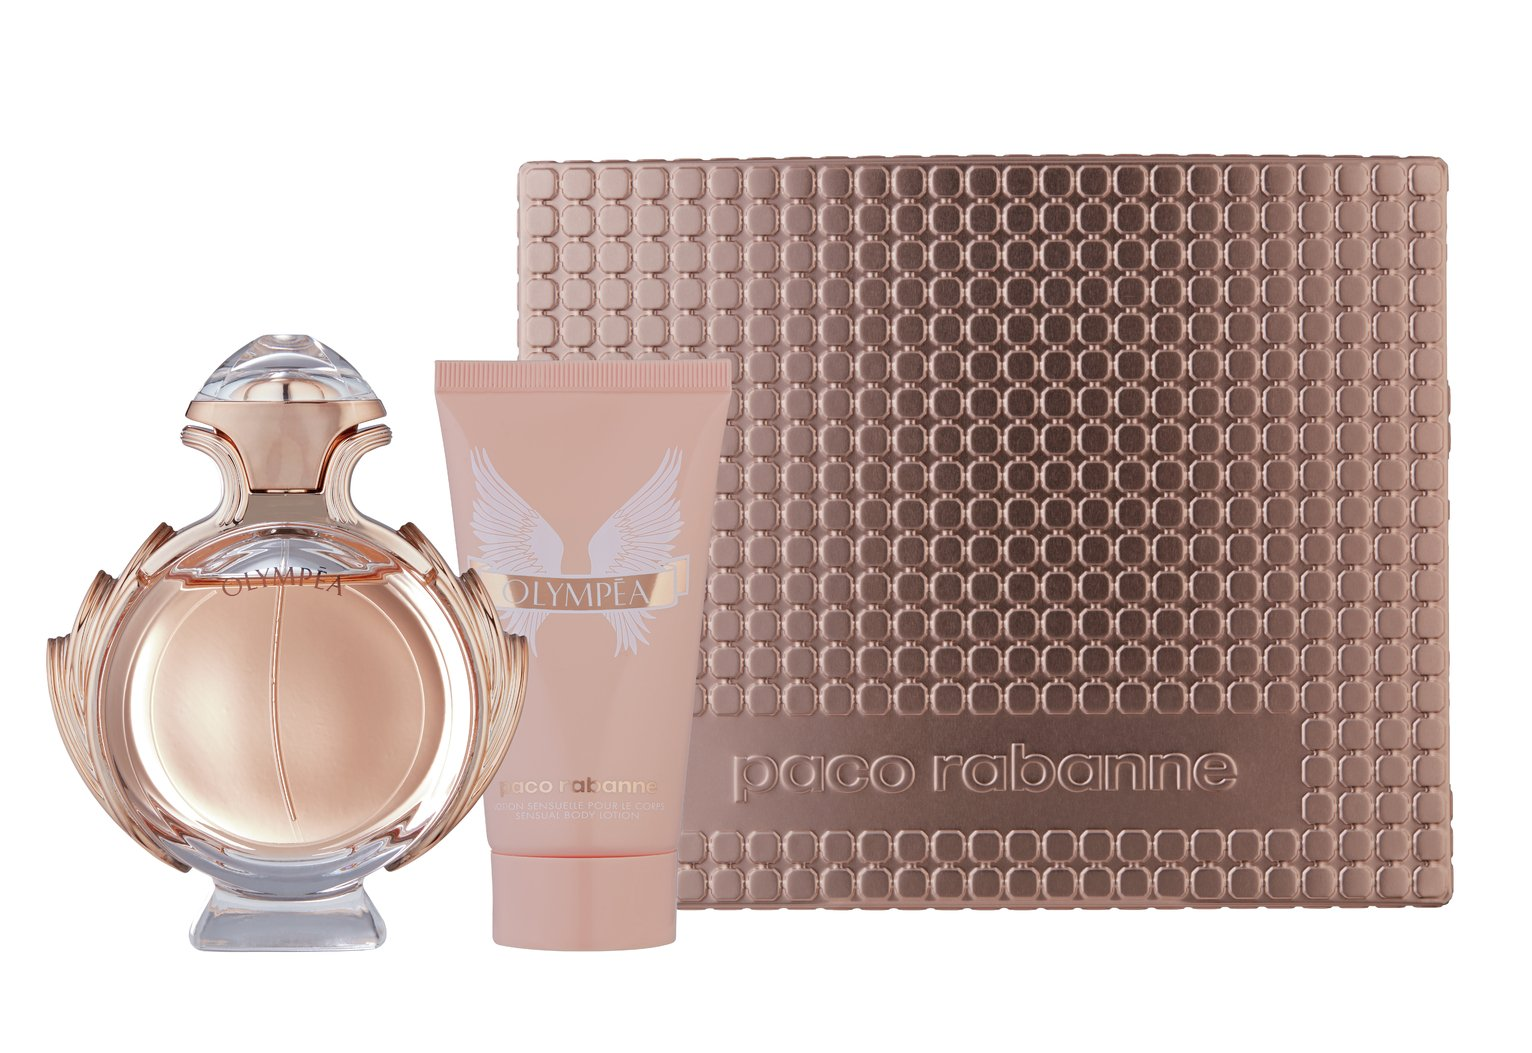 Paco Rabanne Olympea for Women Eau de Parfum Gift Set - 50ml